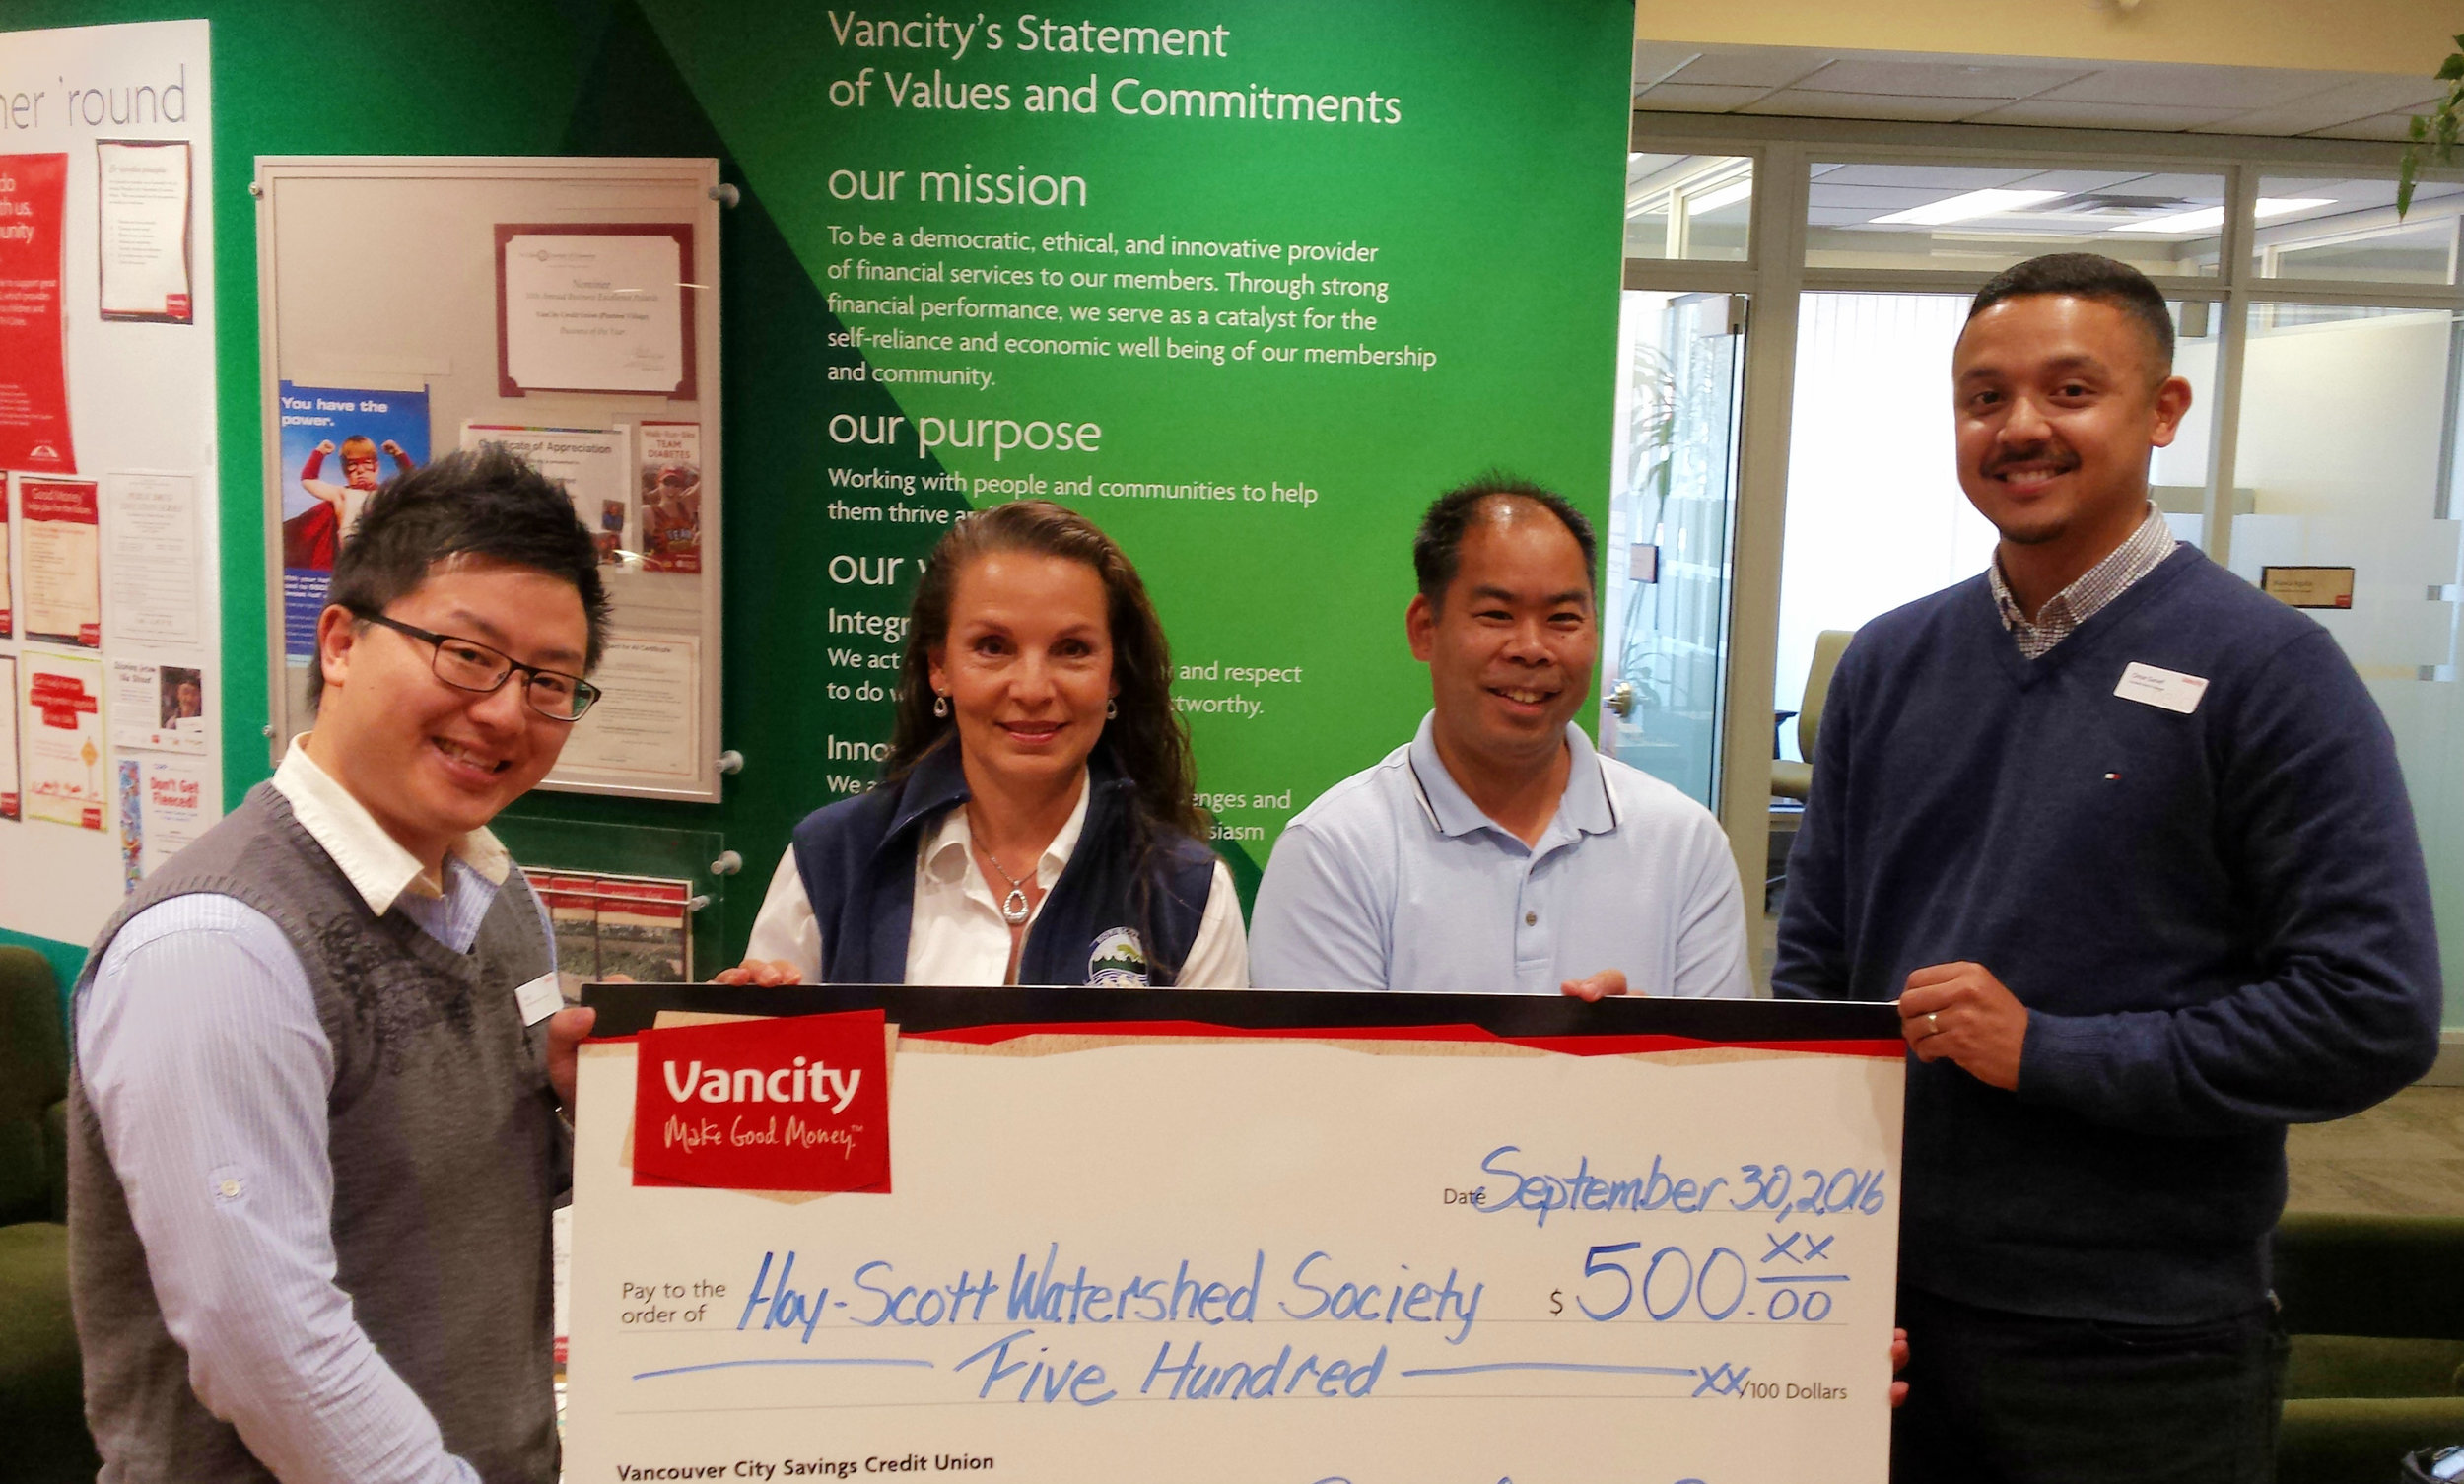 From left to right: Andy Leong CFP, Vancity Branch Business Account Manager; Robbin Whachell, President, HSWS; Kyle Uno, Treasurer HSWS; and Omar Ganief, Assistant Branch Manager, Vancity Pinetree Community Branch.